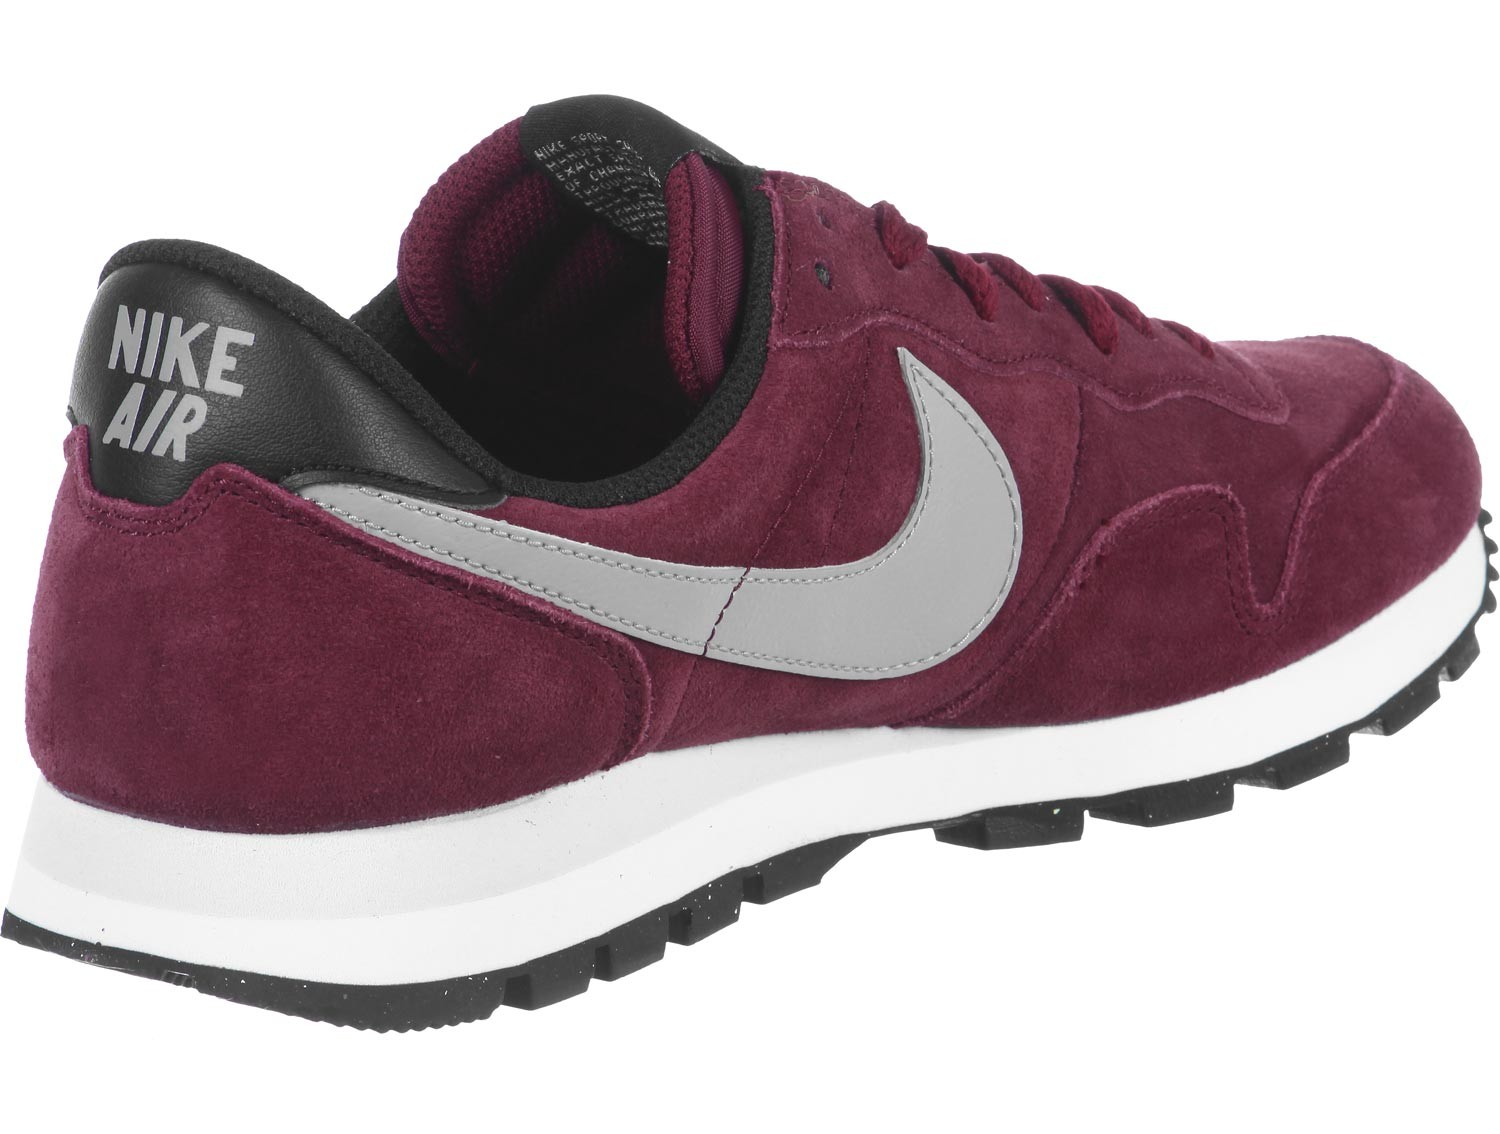 new product 6d56f 59a49 nike air pegasus femme bordeaux